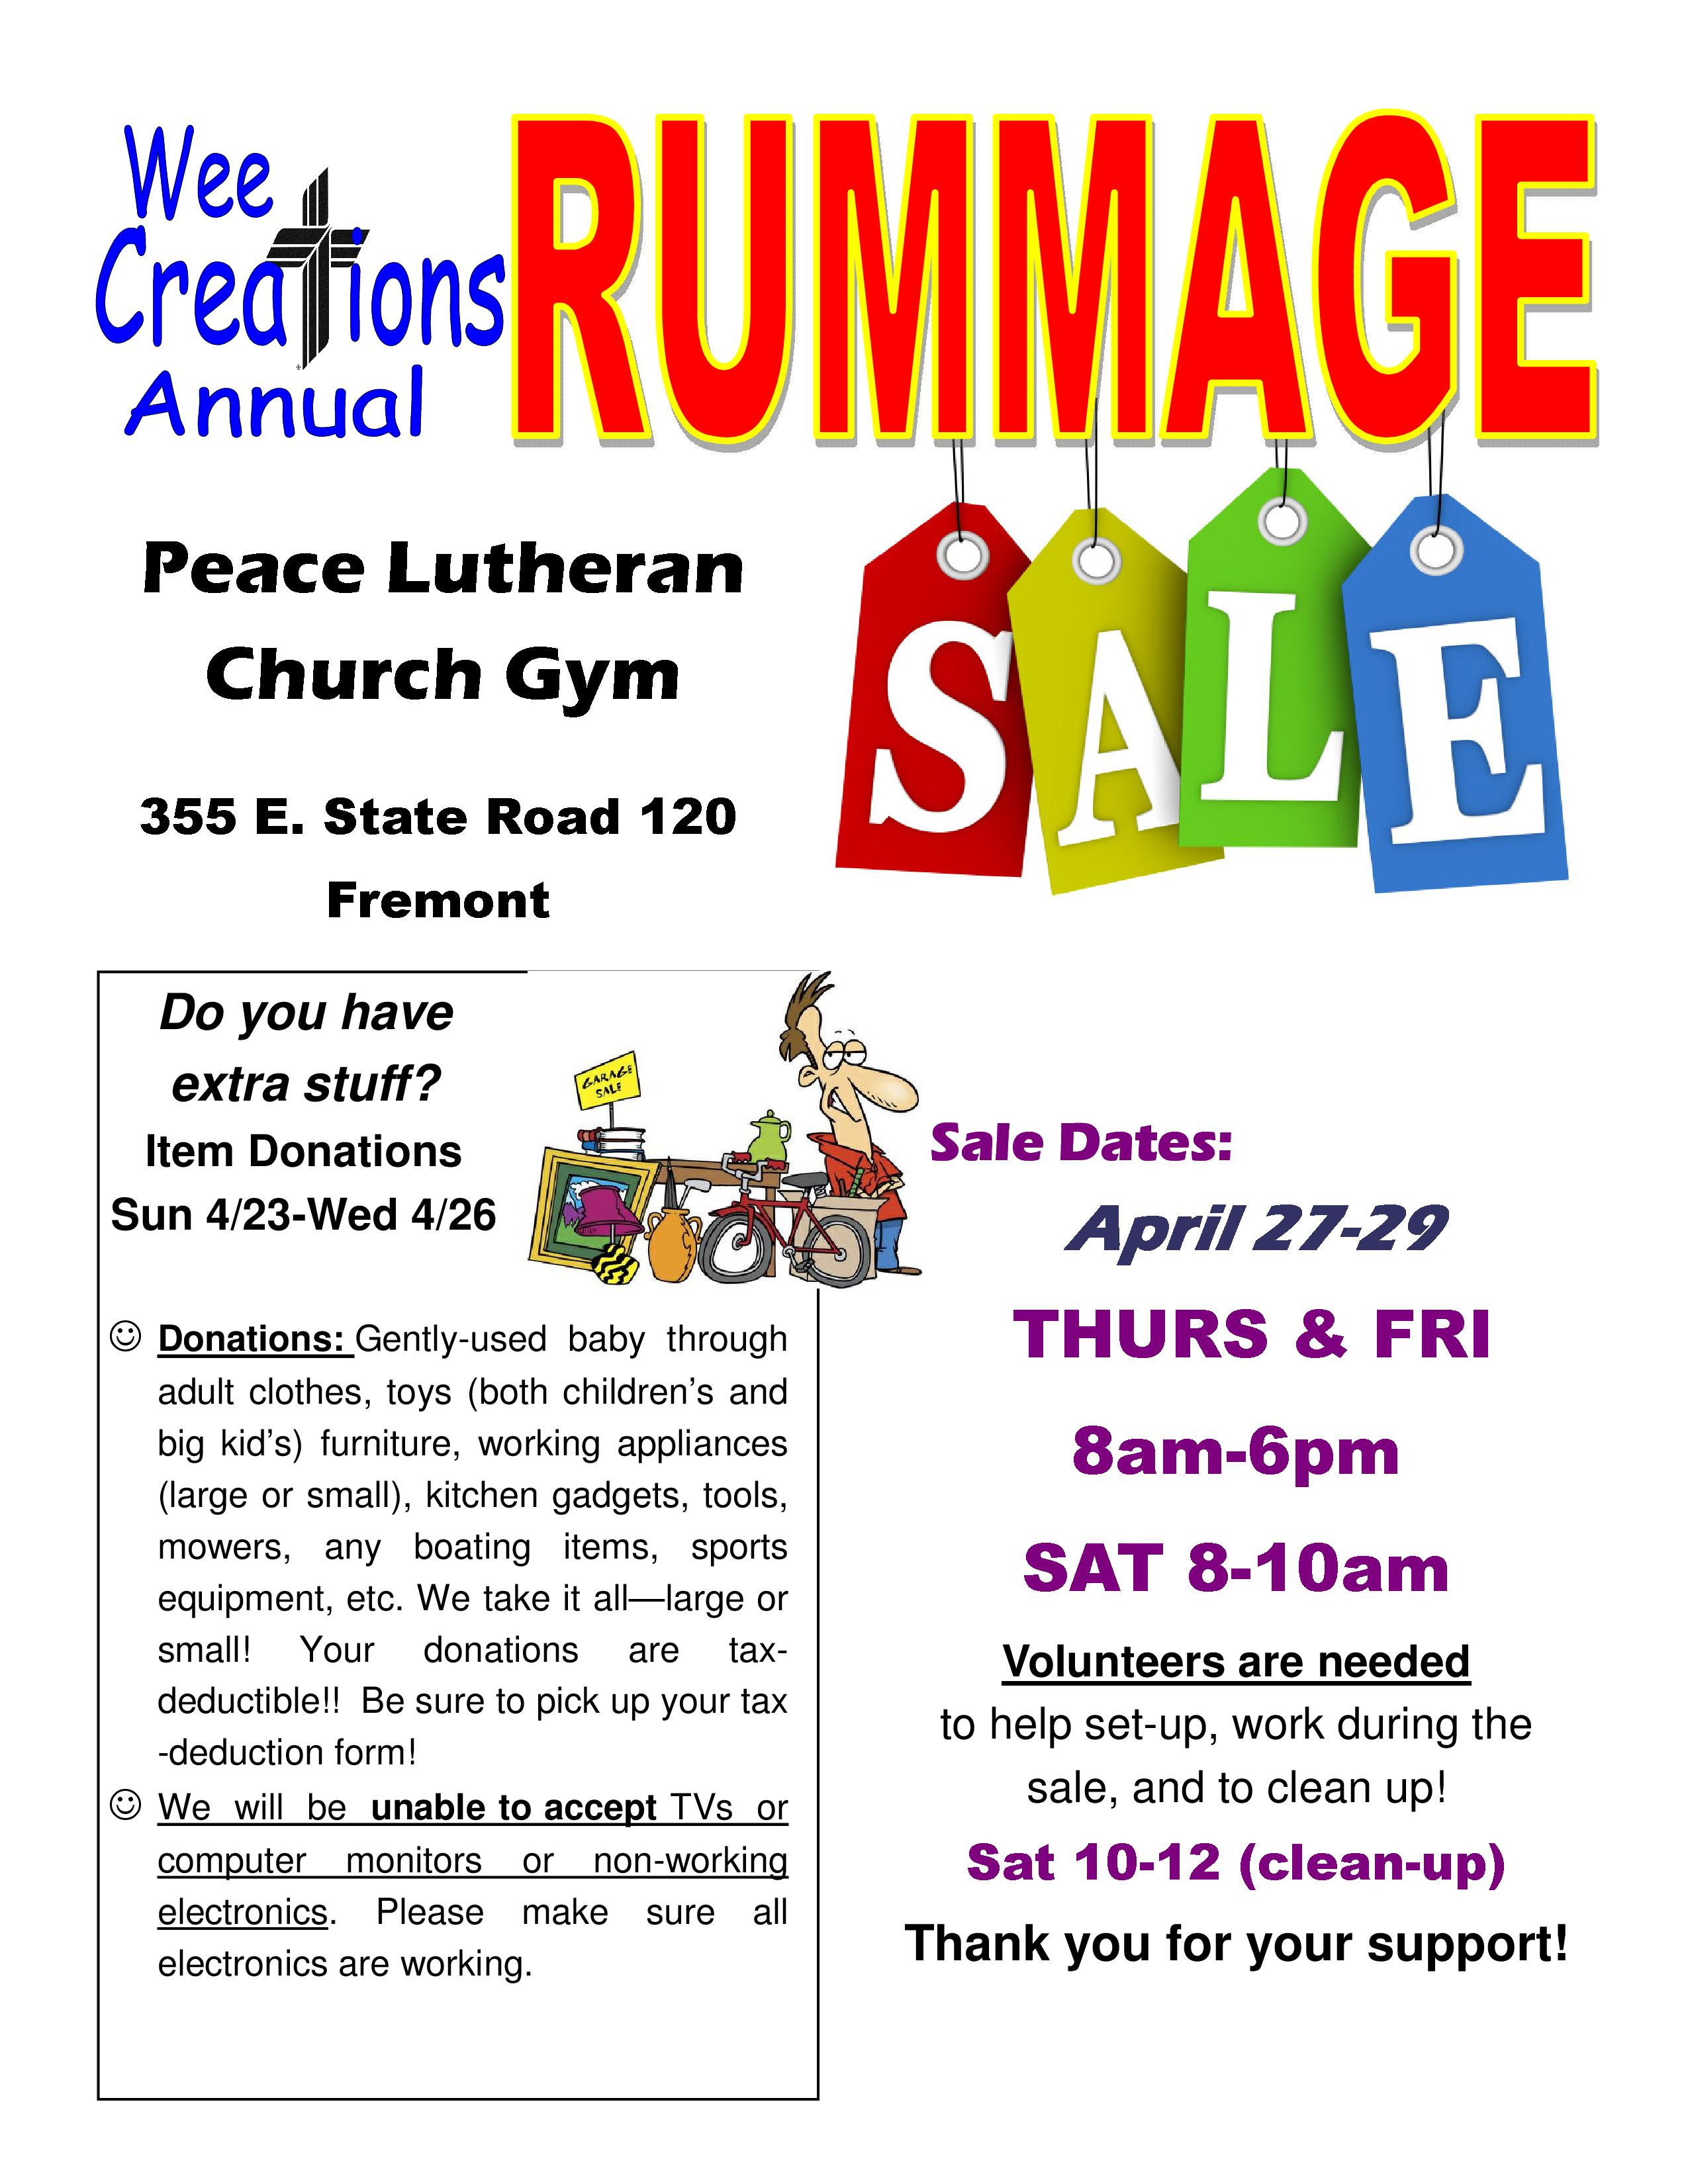 Wee Creations Rummage Sale - Peace Lutheran Church - Fremont, IN